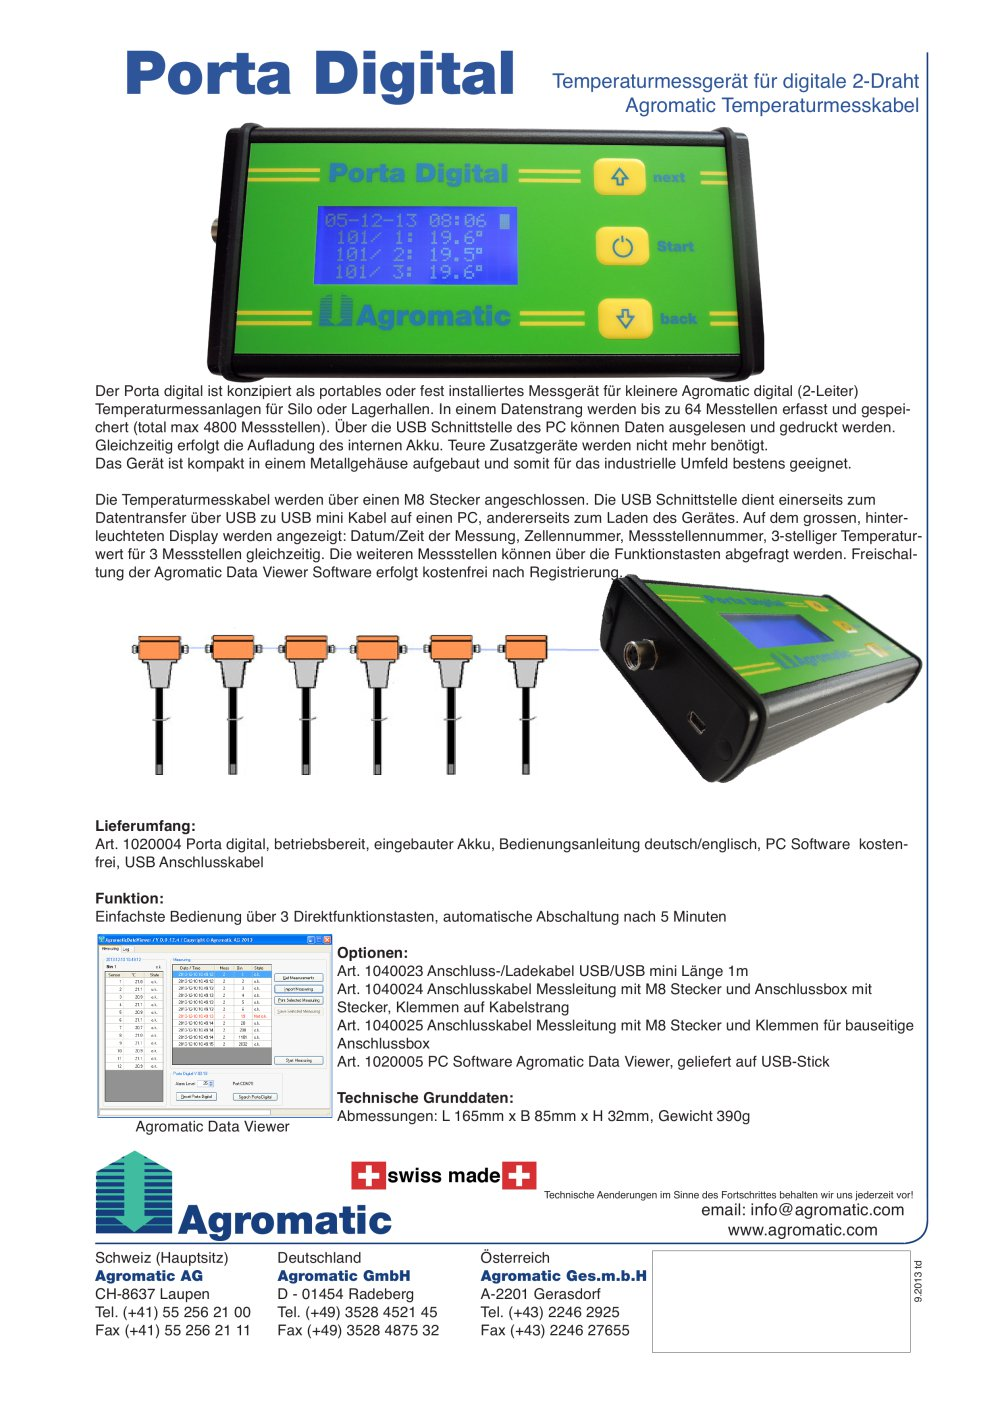 PORTA Digital control unit - Agromatic AG - PDF Catalogue ...